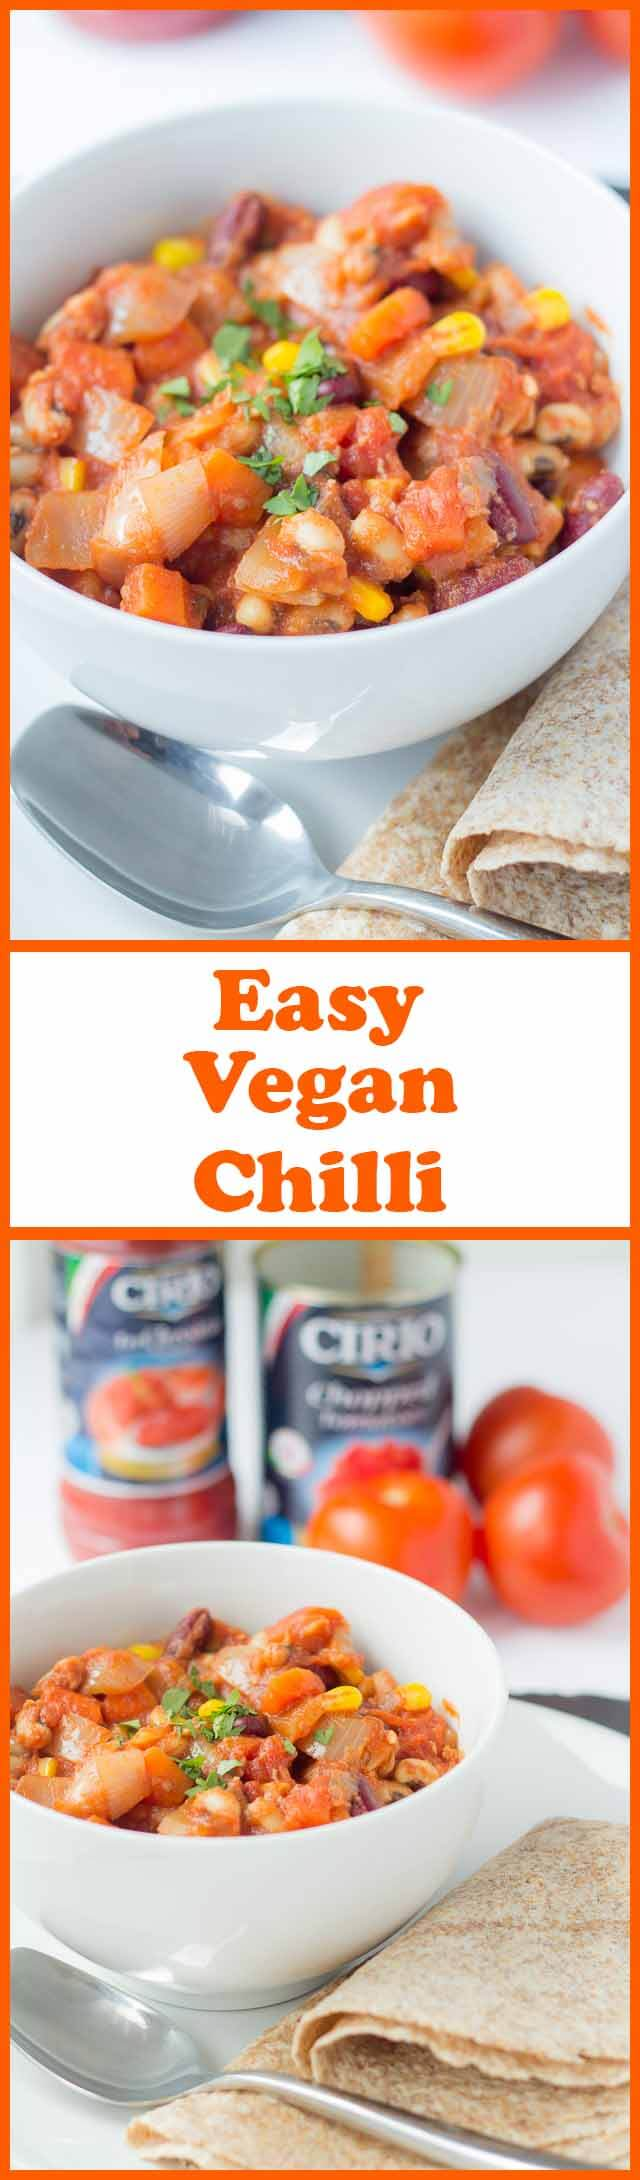 Easy vegan chilli is just that an all in one pot of delicious and easily made vegetables and beans. It's packed full of vitamins and with this quick healthy meat free chilli alternative you'll find you won't be missing meat at all!